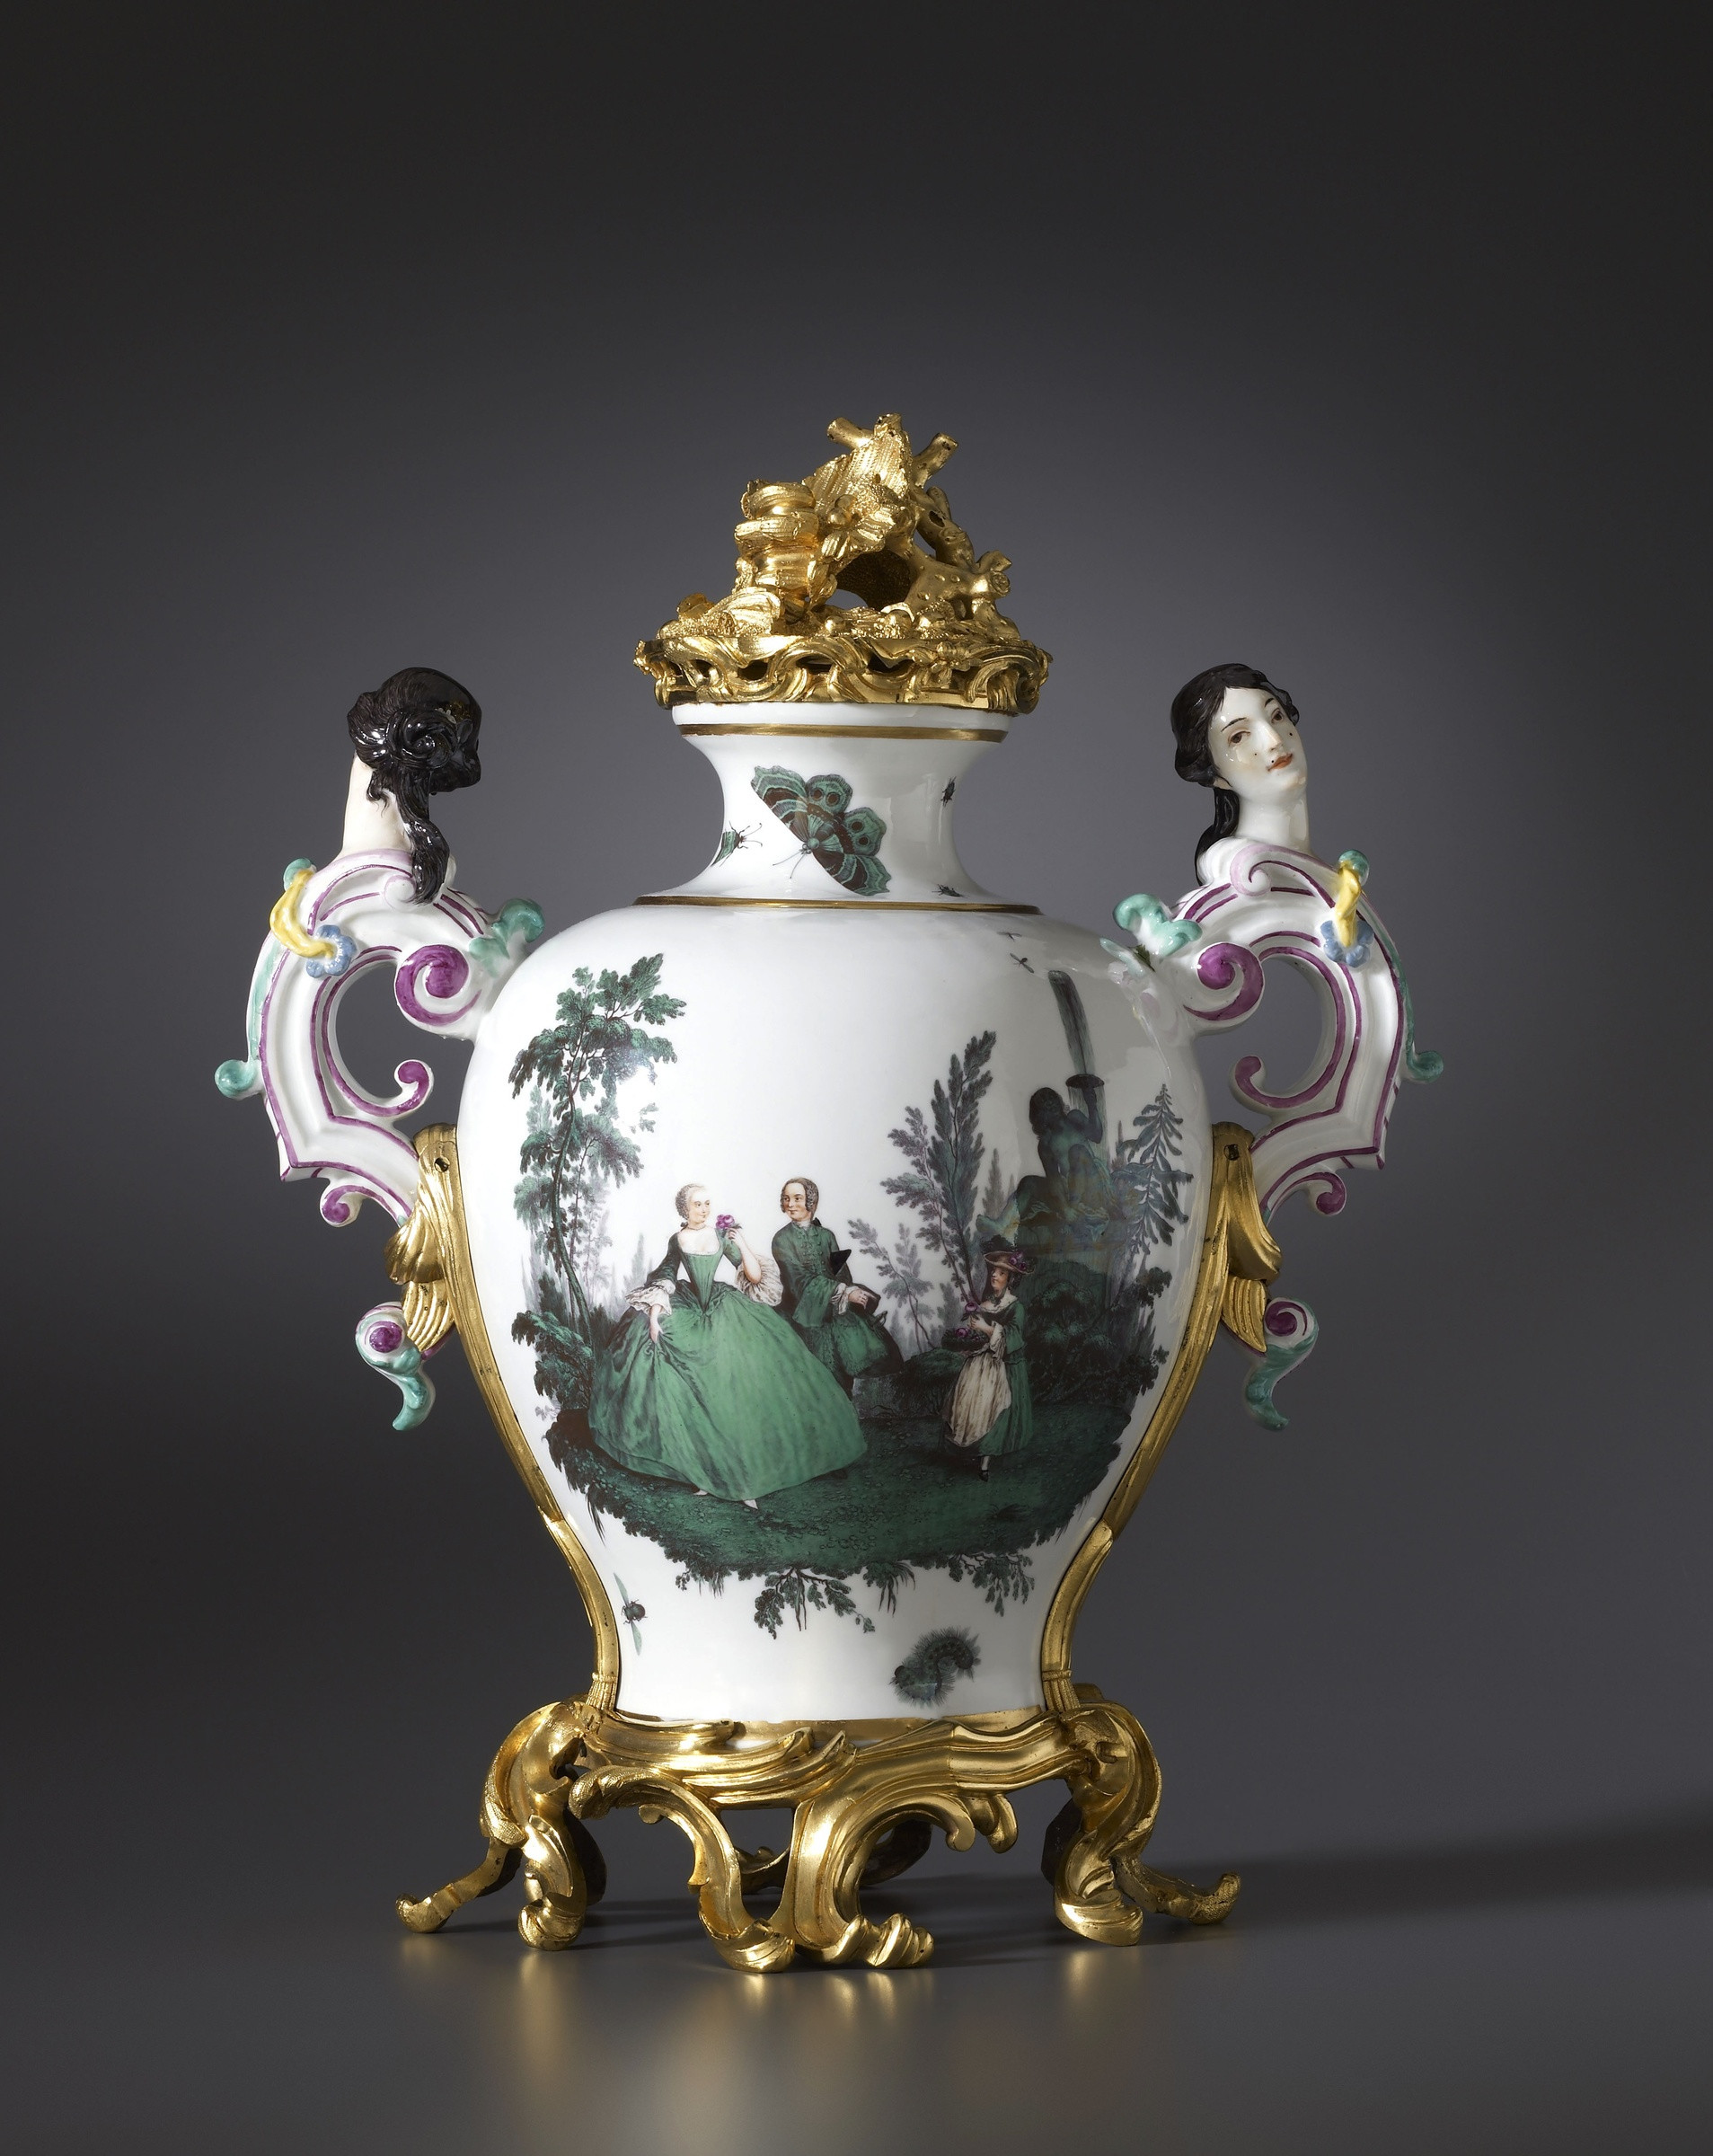 chinese porcelain vases for sale of meissen a louis xv vase by meissen almost certainly modelled by within a louis xv vase by meissen almost certainly modelled by johann joachim ka¤ndler